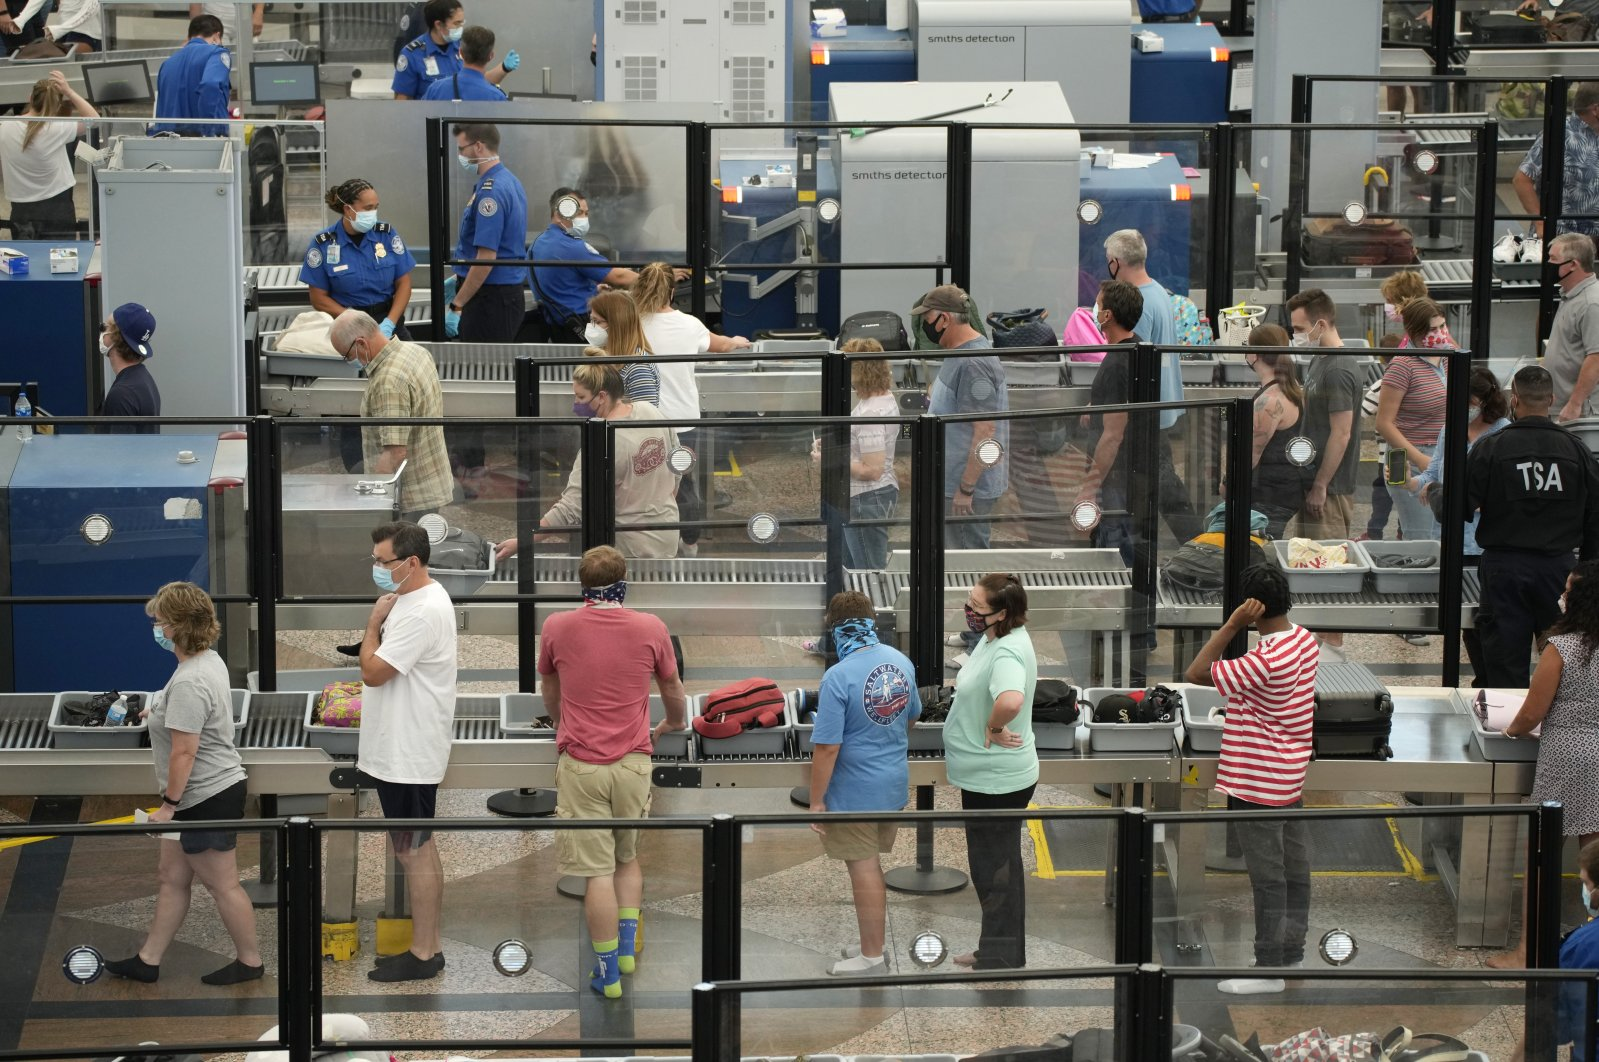 Travelers wear face coverings in the queue for the north security checkpoint in the main terminal of Denver International Airport, Colorado, U.S., Aug. 24, 2021. (AP Photo)